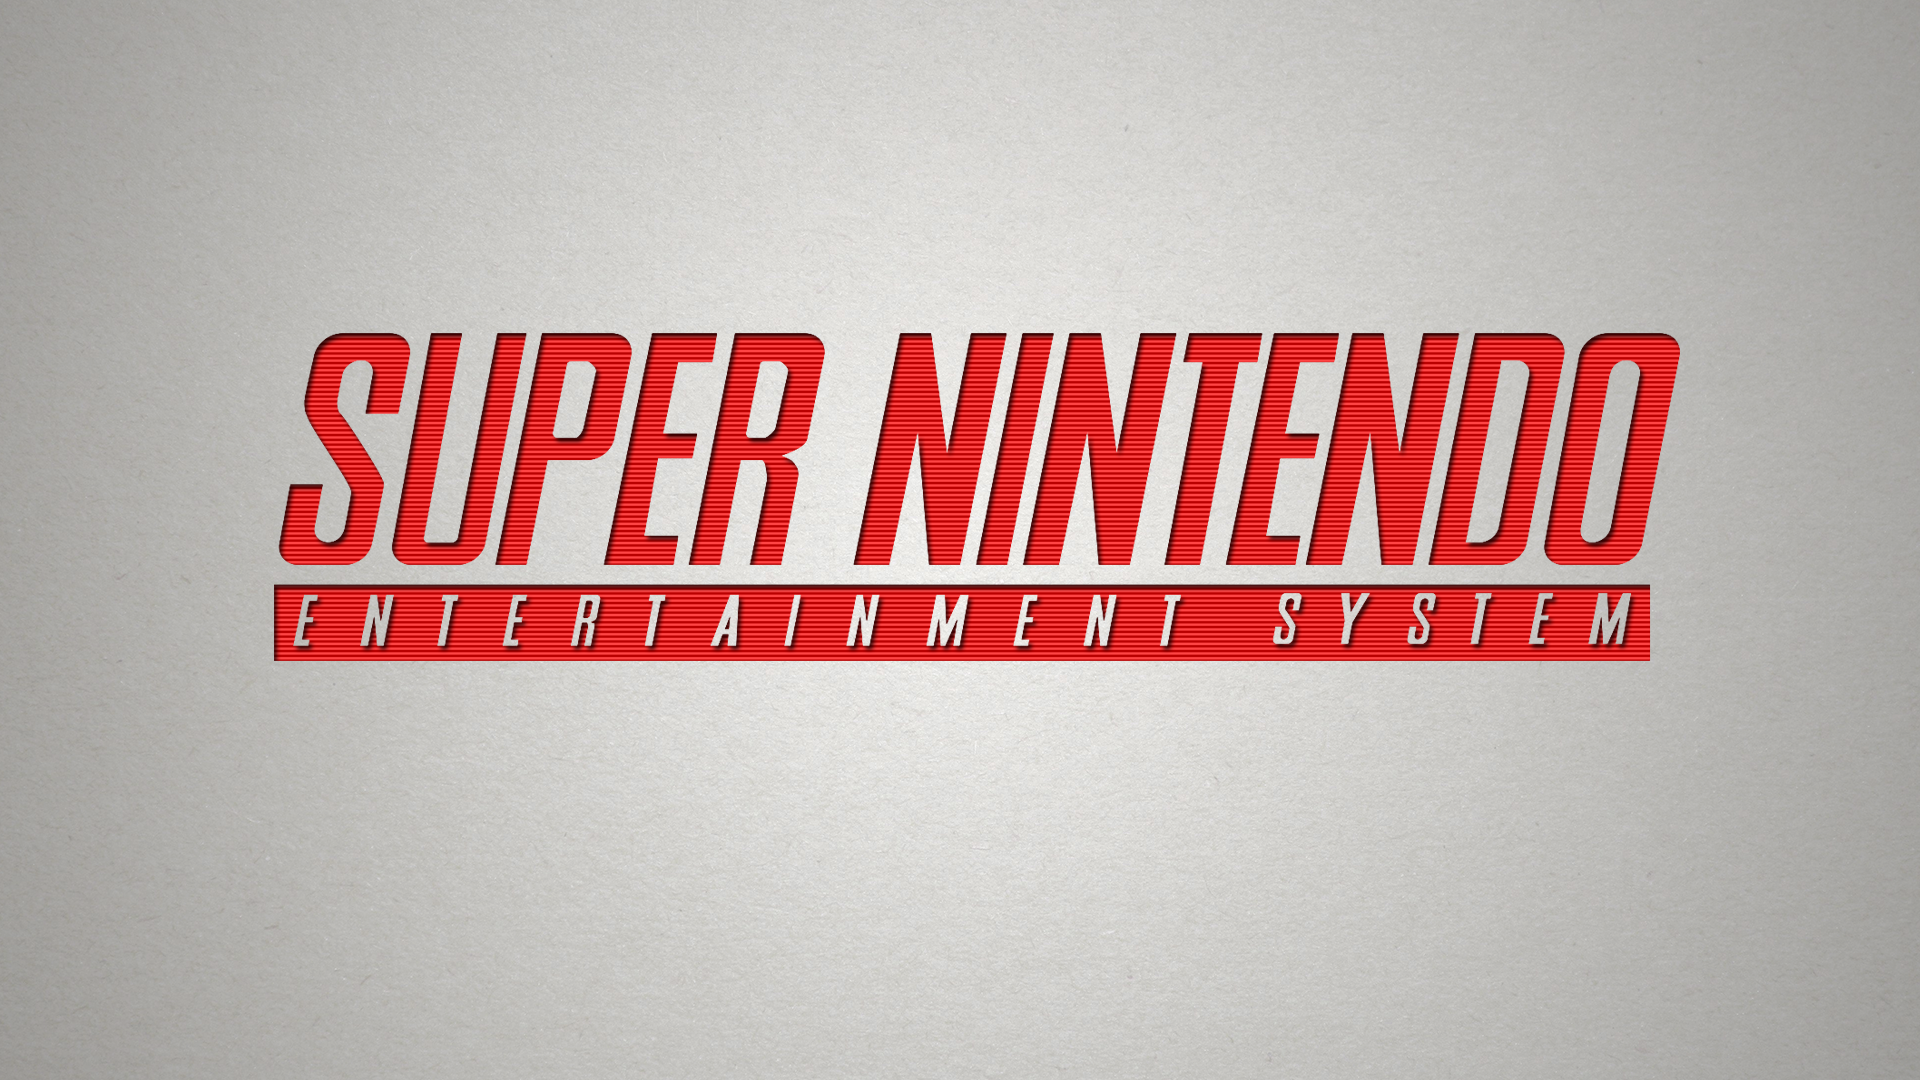 456298 Title Video Game Super Nintendo Consoles Nintendo Super Nintendo Wallpaper 1080p 1920x1080 Download Hd Wallpaper Wallpapertip